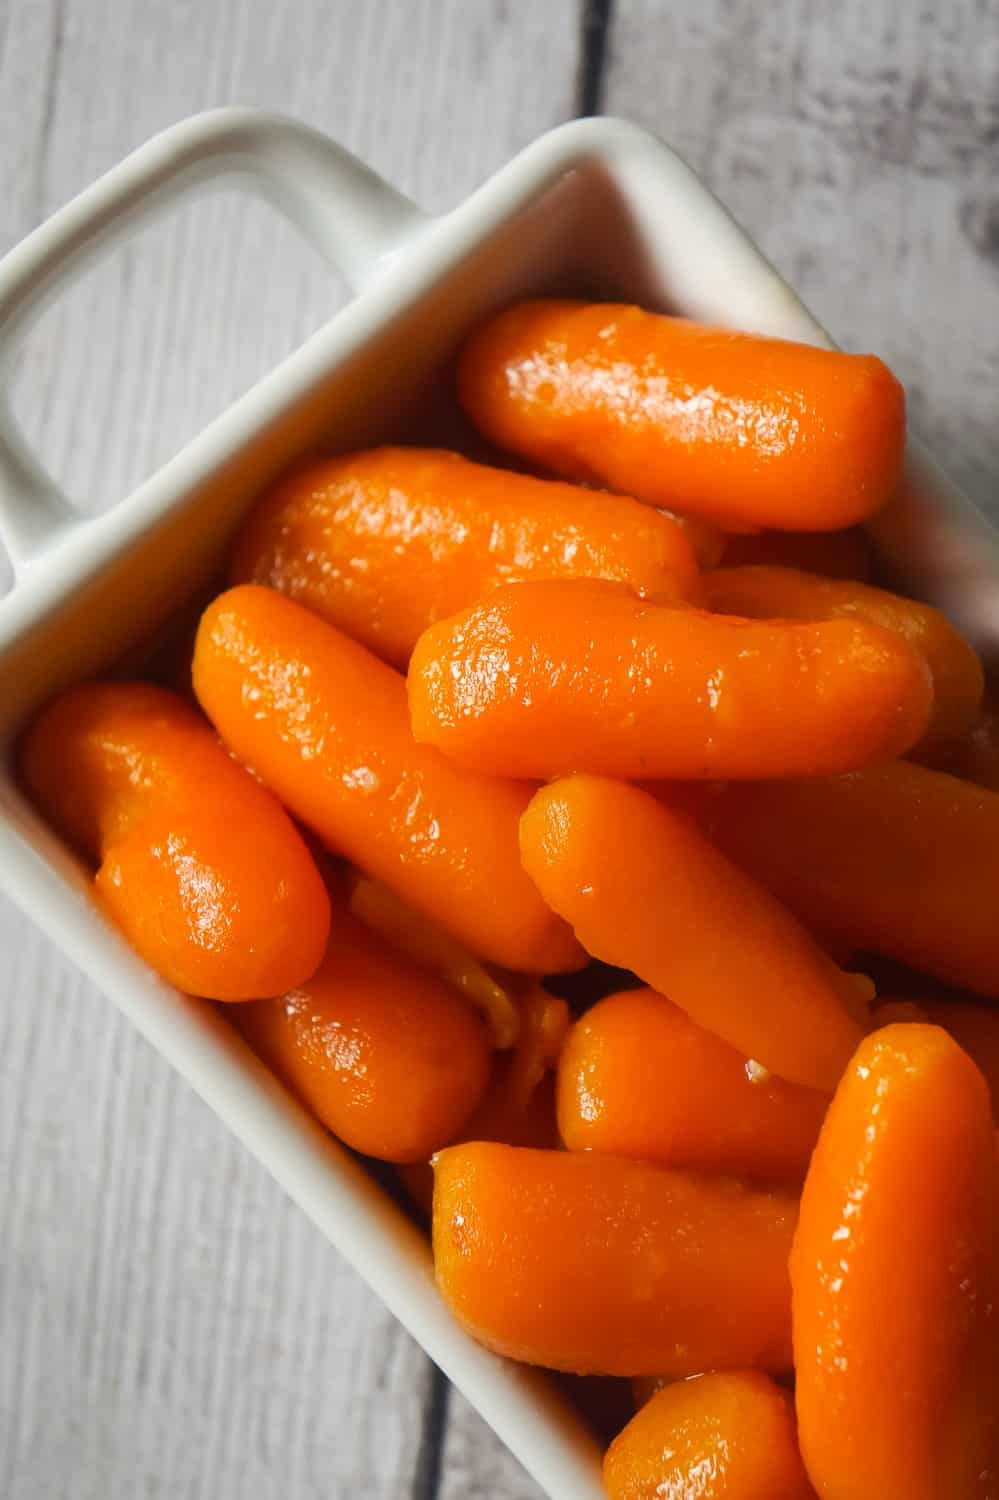 Instant Pot Glazed Carrots are an easy pressure cooker side dish recipe using butter, brown sugar, garlic puree and Worcestershire sauce.